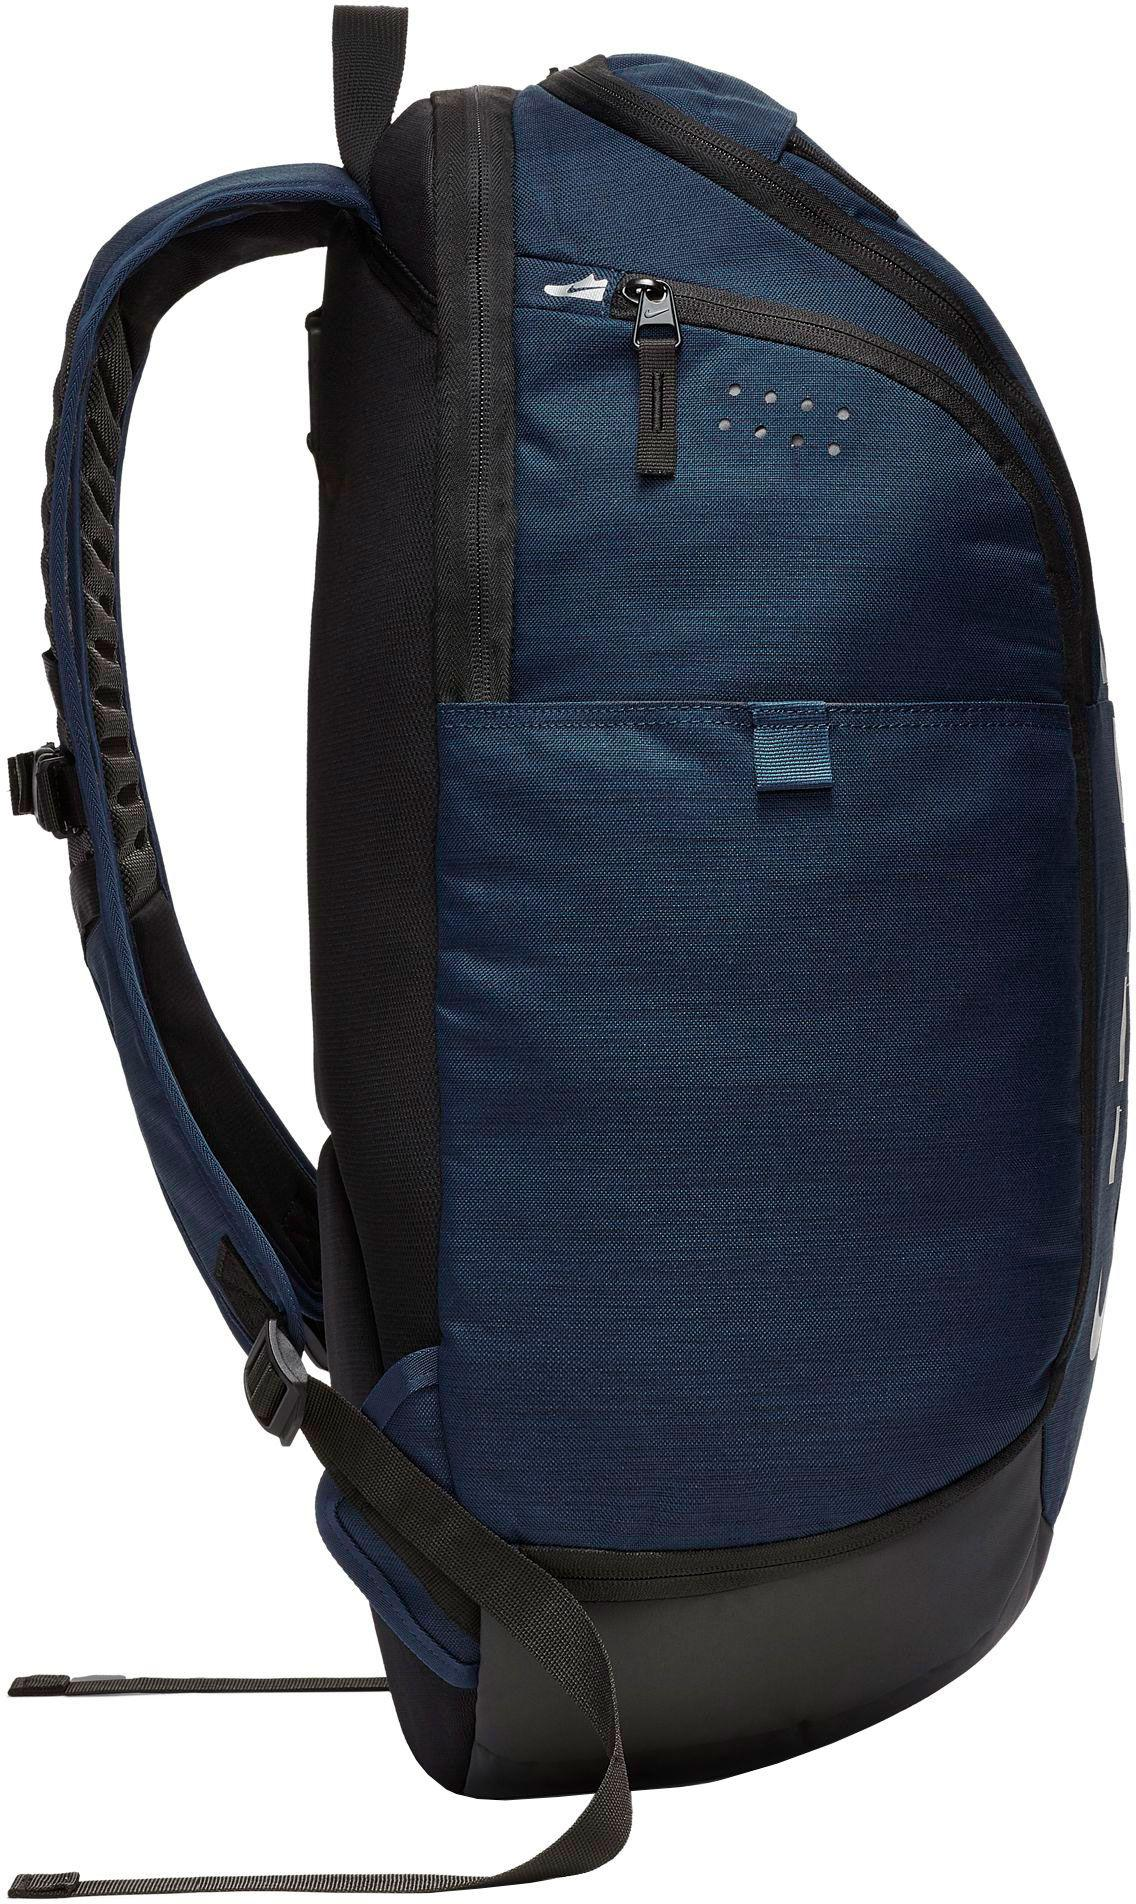 0a10a3f2f6b7 Lyst - Nike Hoops Elite Pro Basketball Backpack in Blue for Men